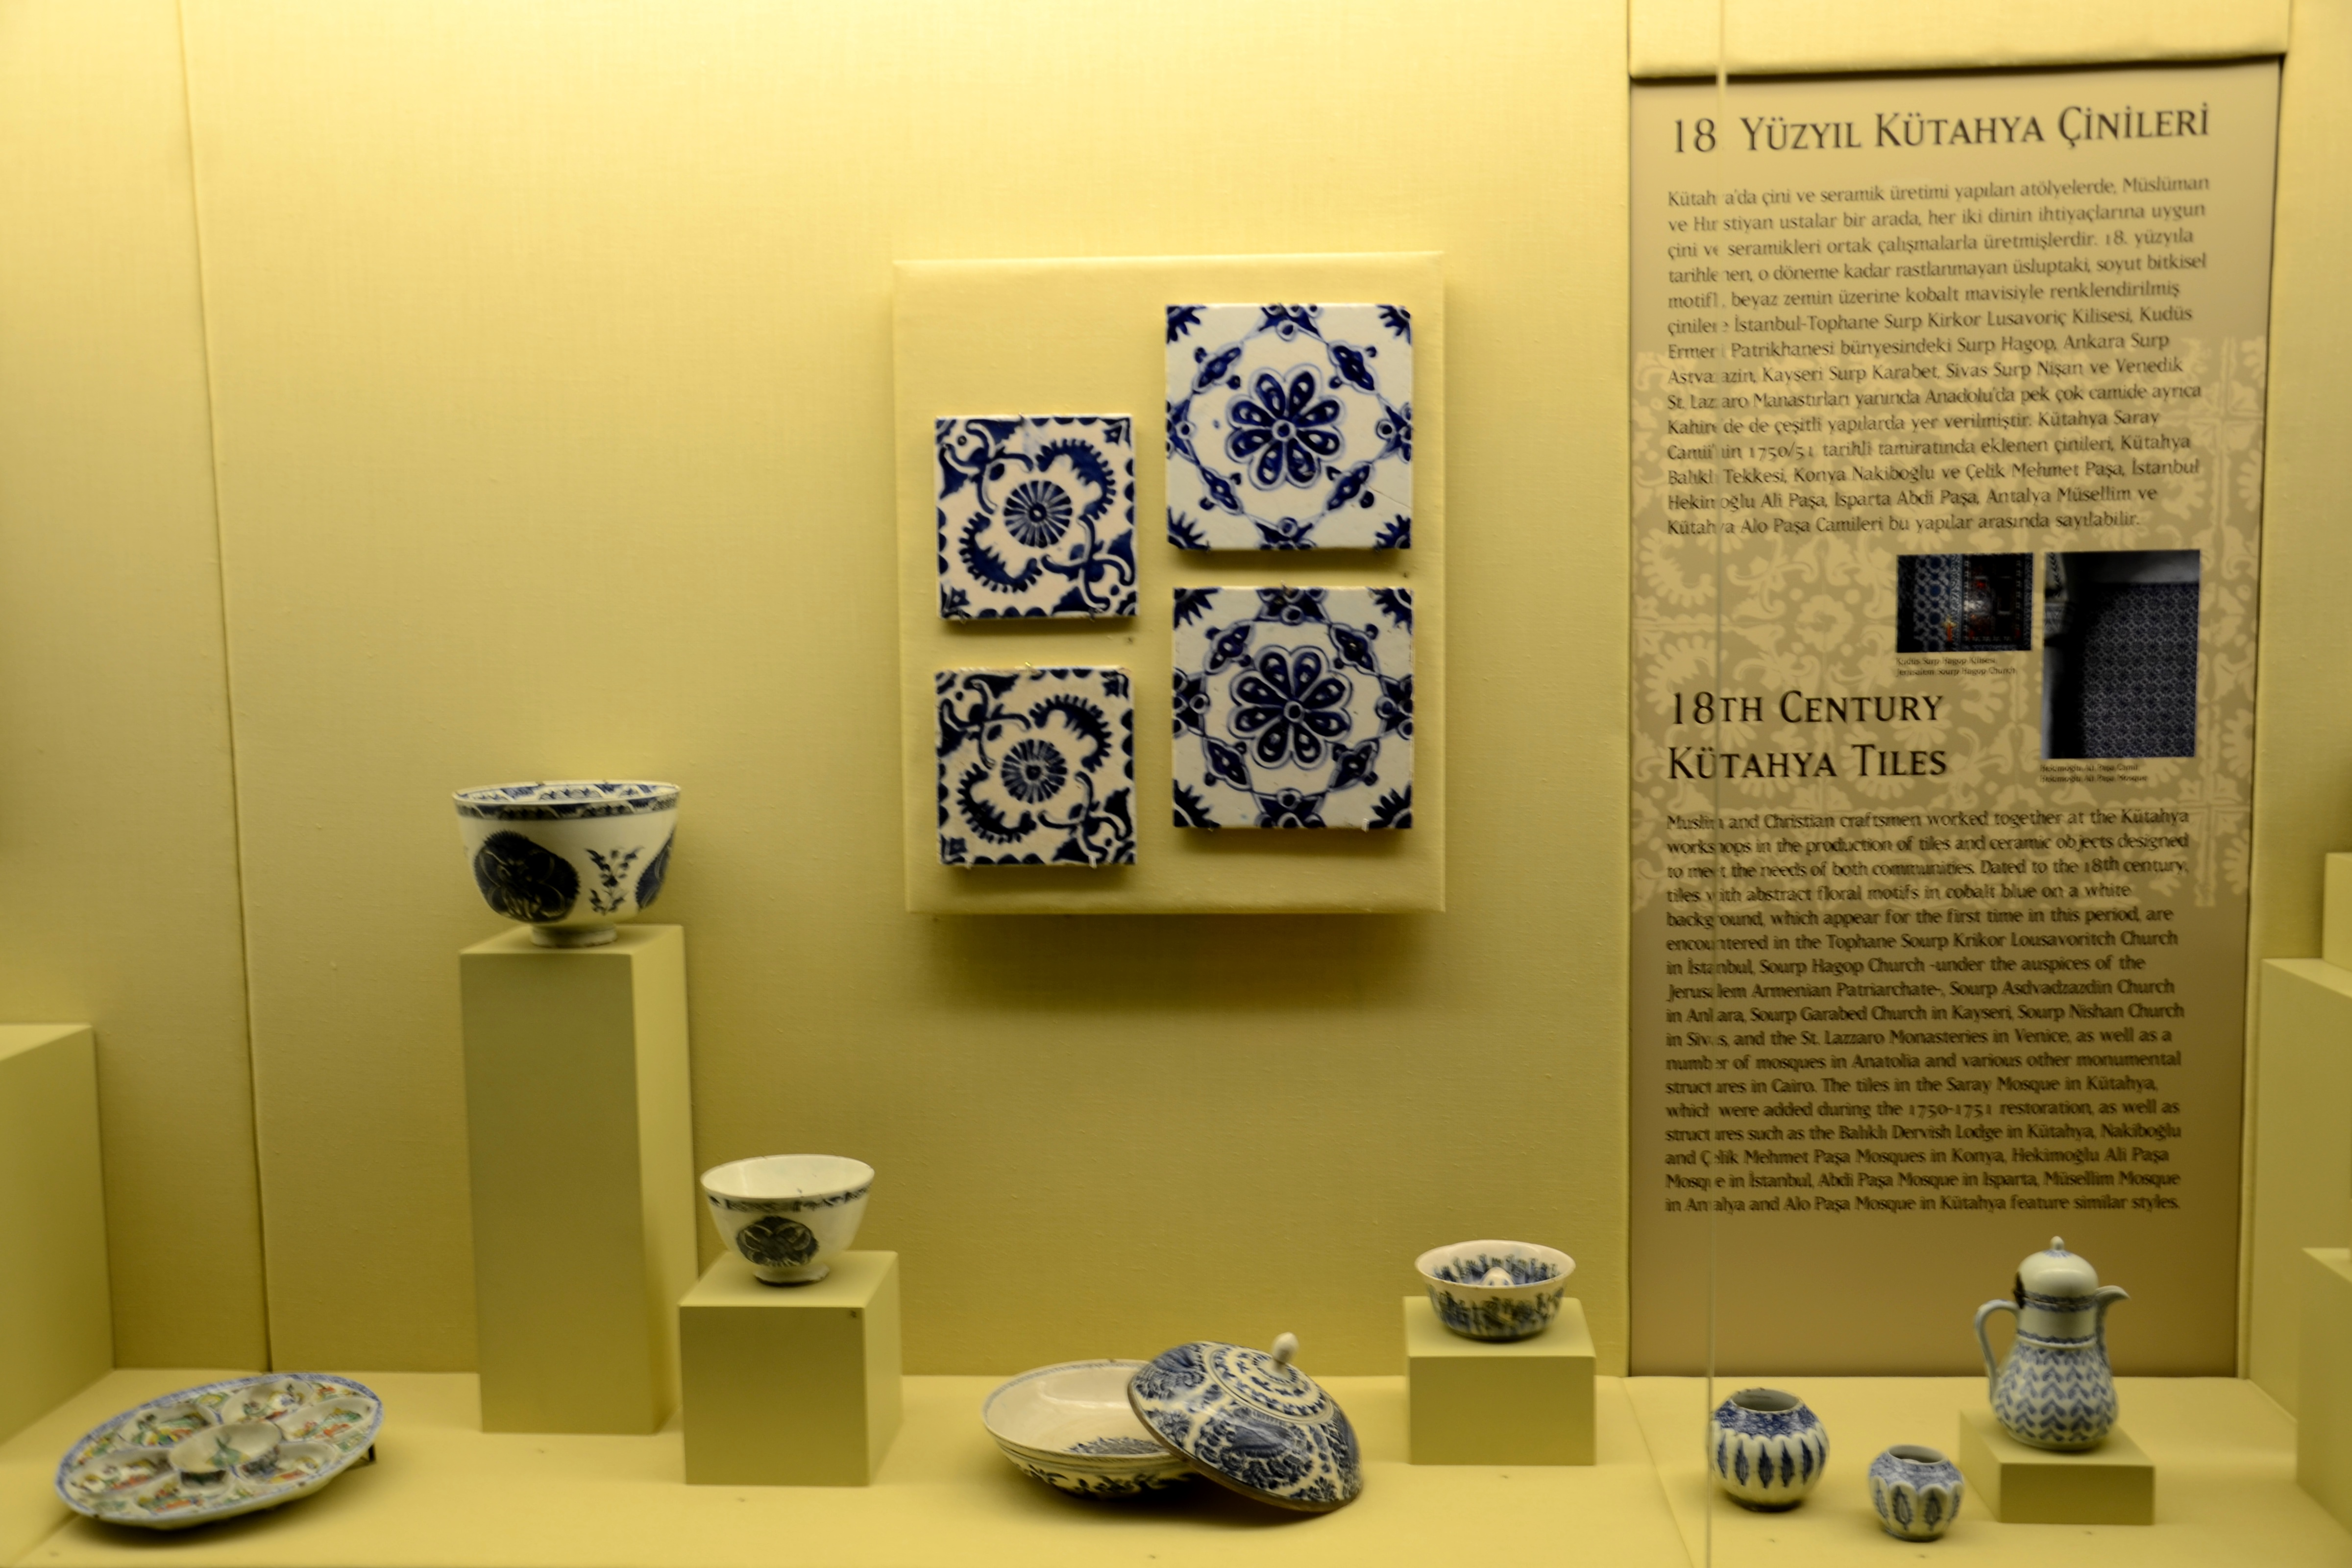 Filecollection Of Ktahya Tiles And Ceramics In Pera Museum